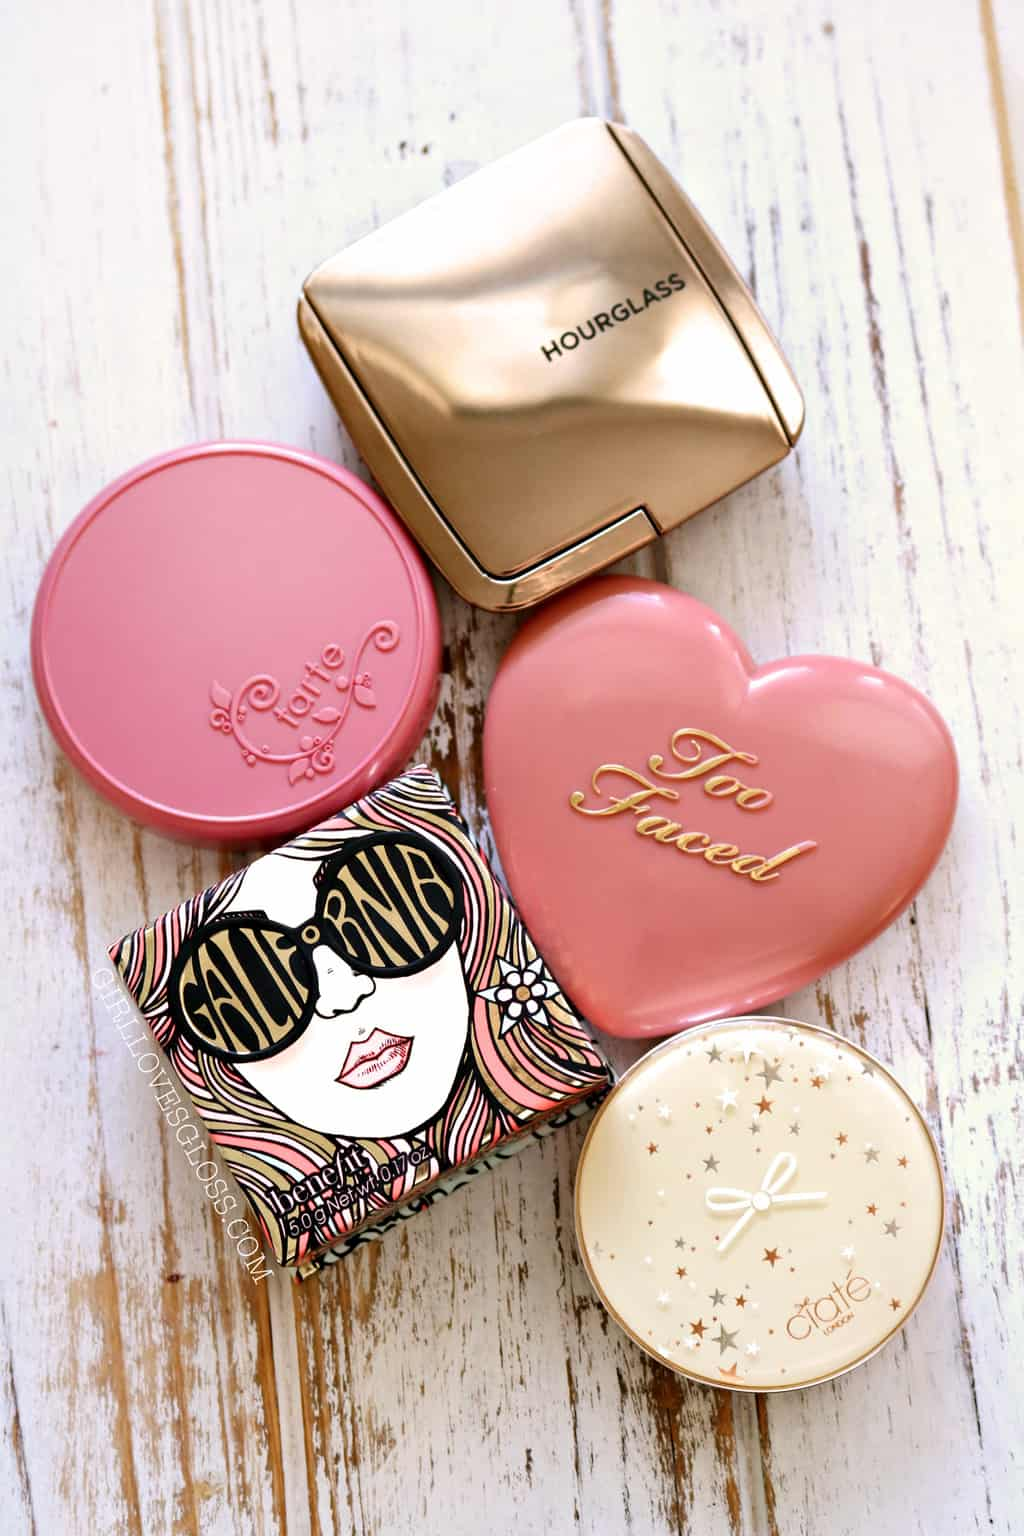 5 best blushes of 2017